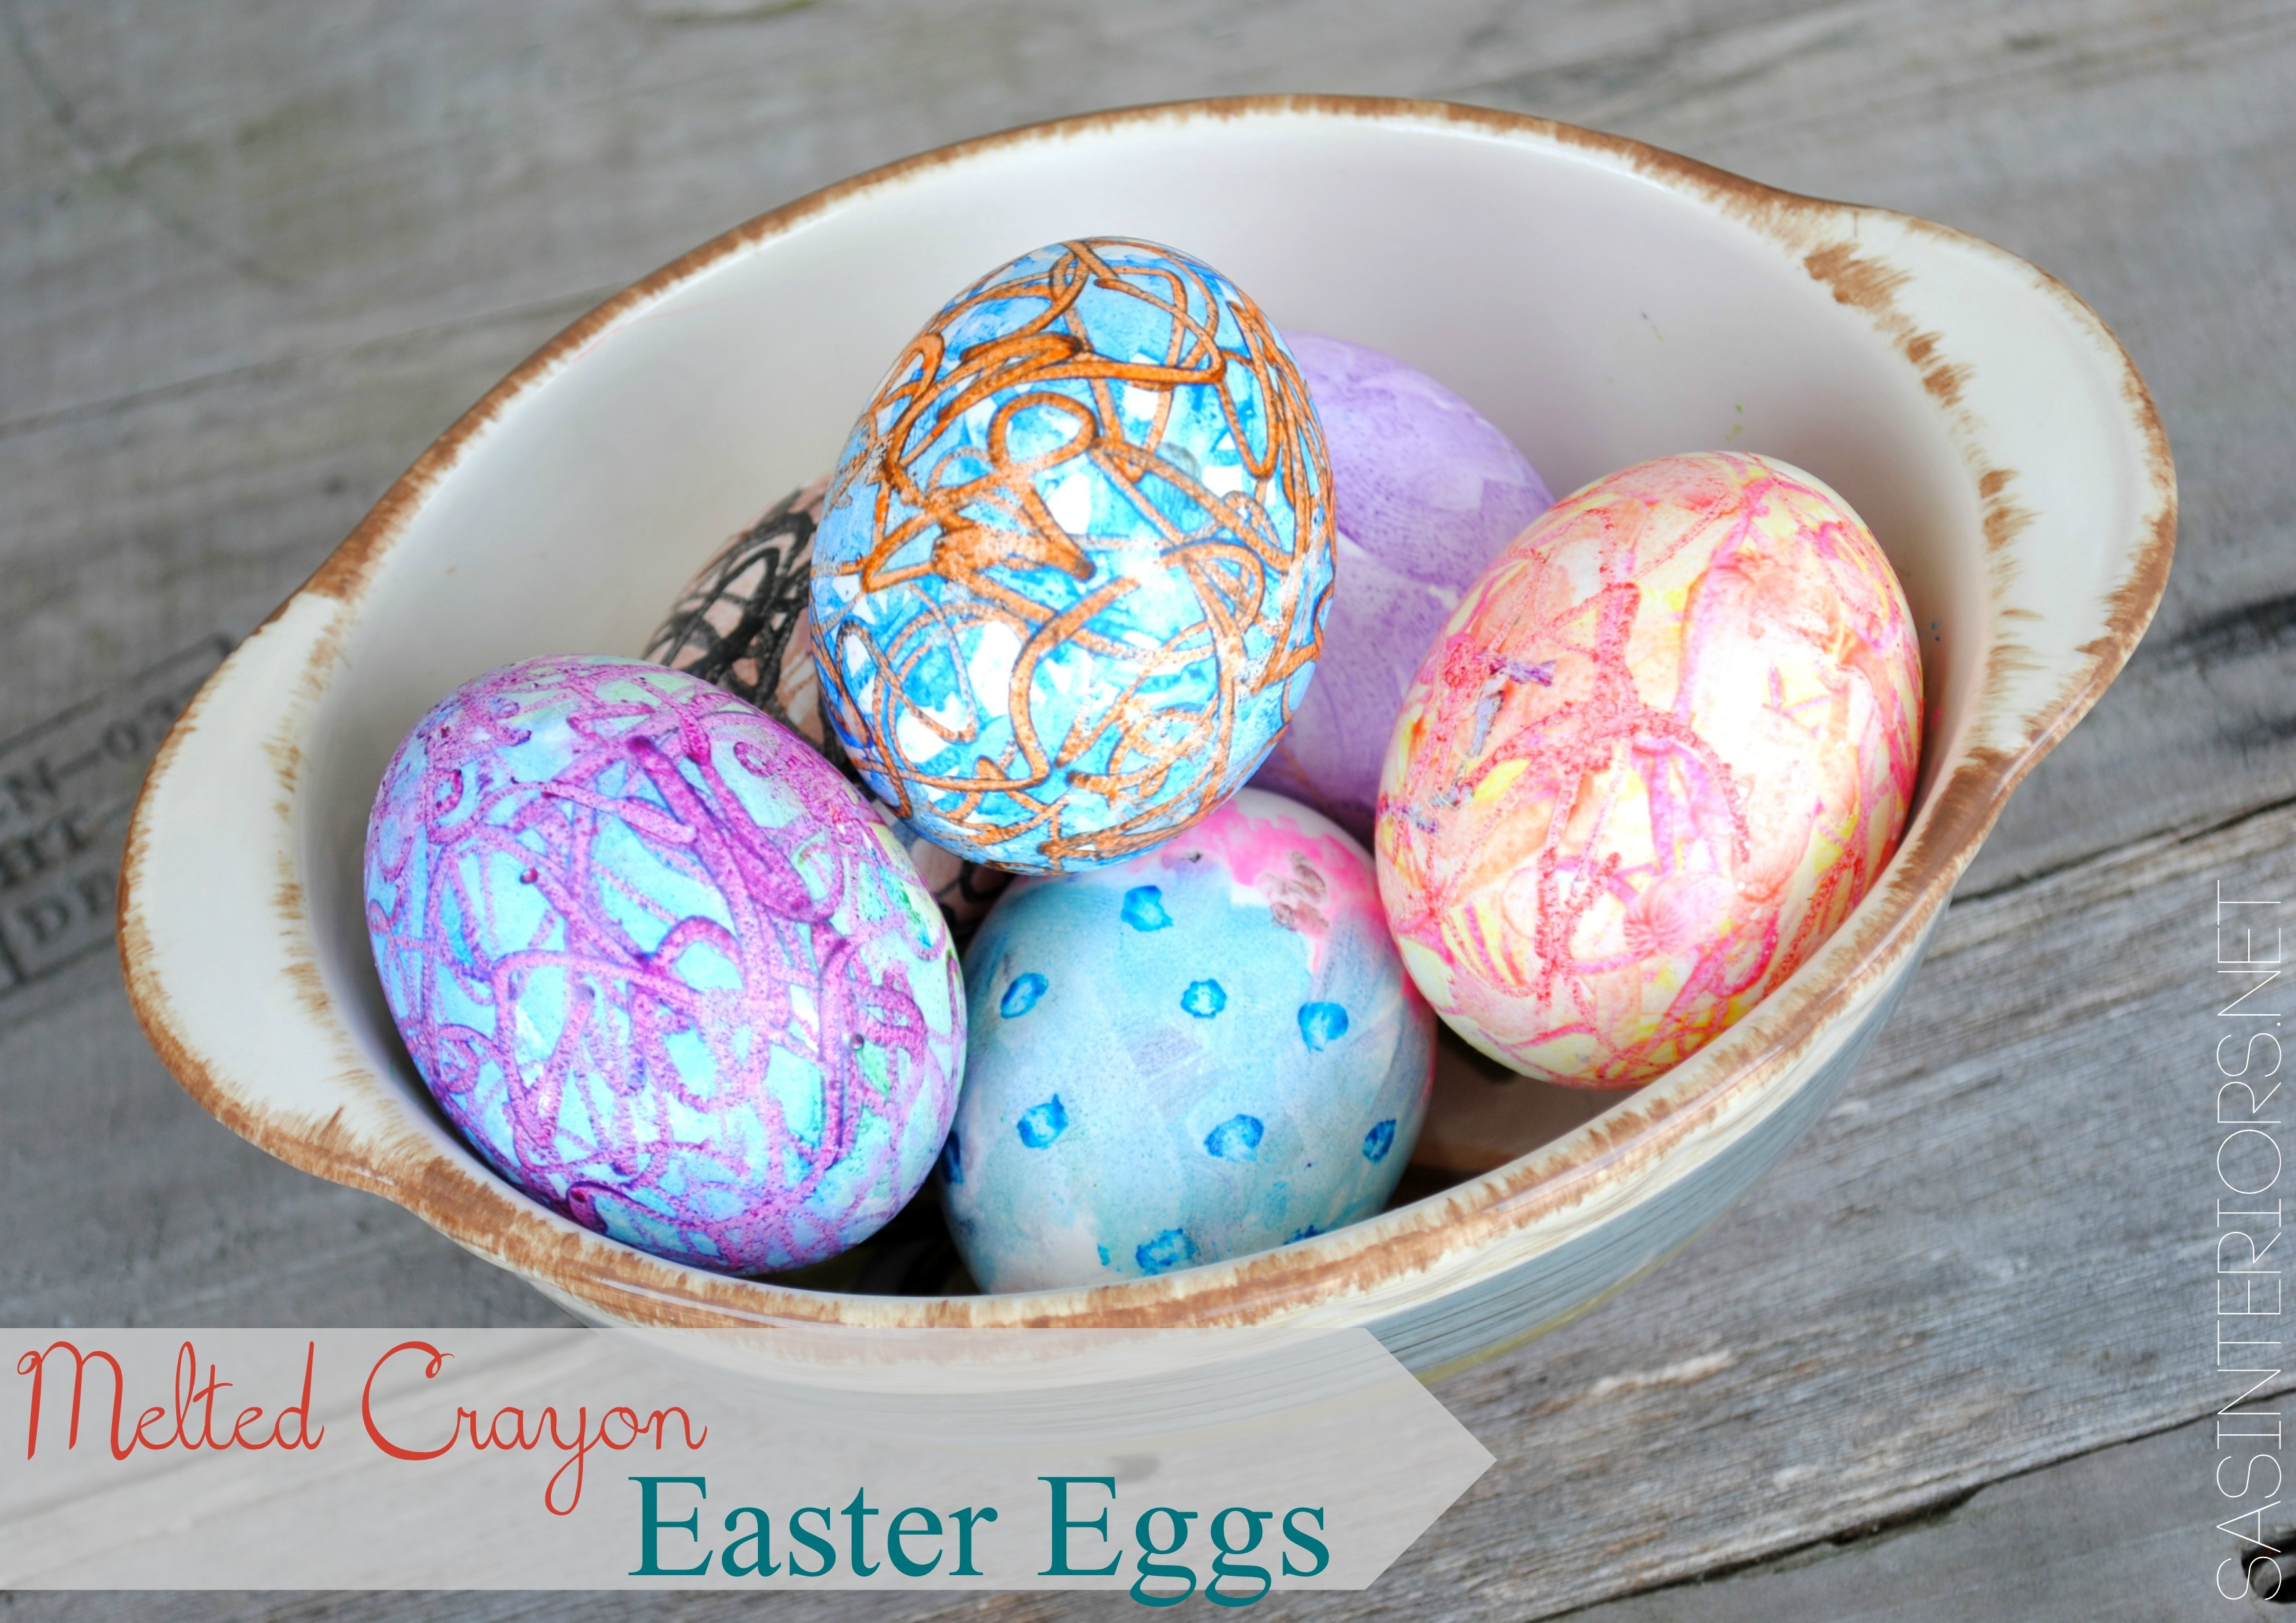 Crayon Crafts: 32 Easter Egg Designs & Ideas For Homesteaders